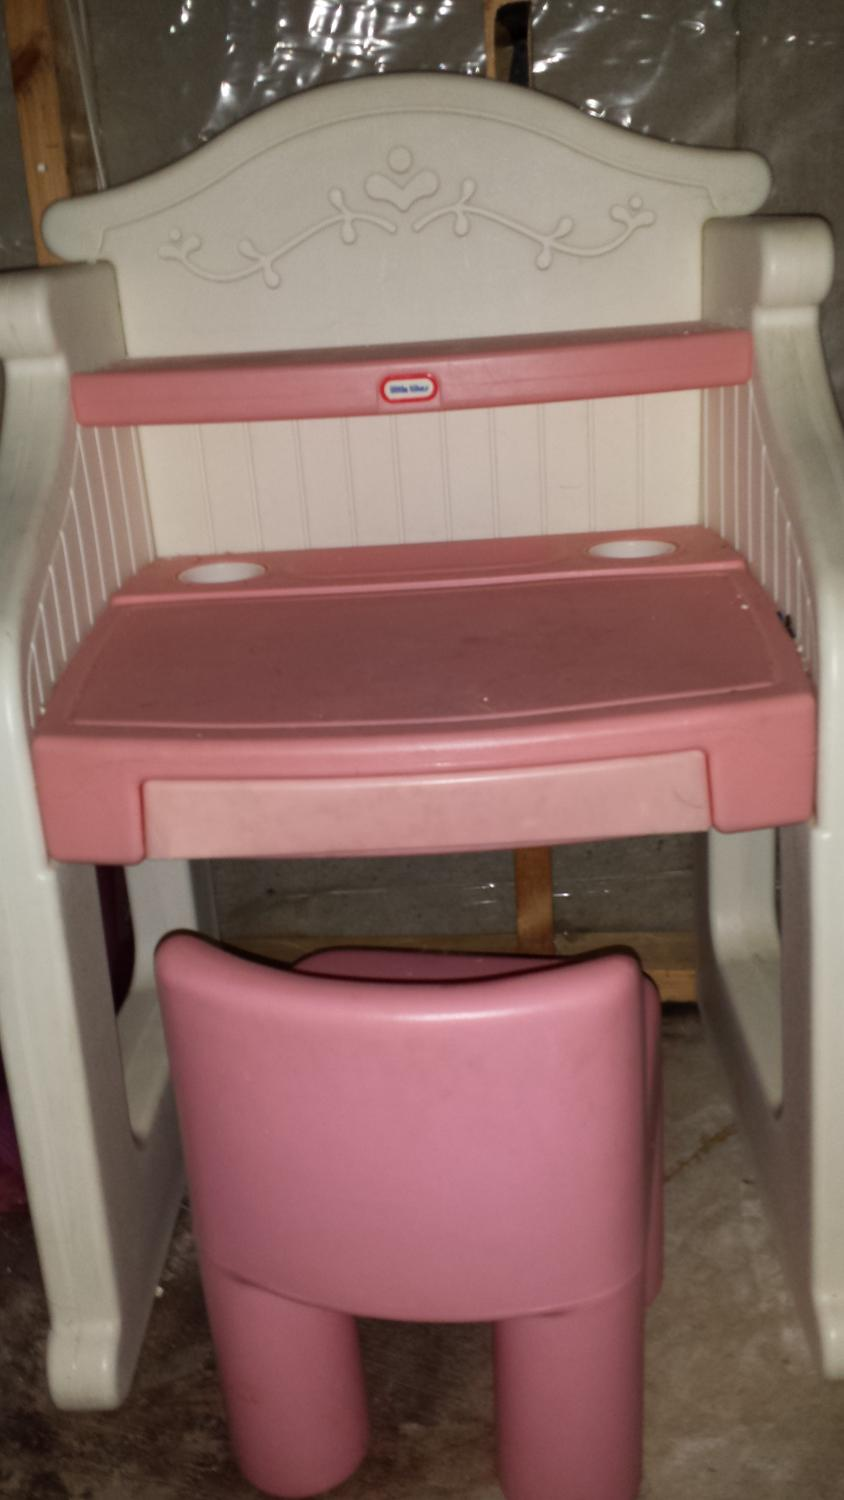 Little tikes table and chairs pink - Best Price Reduced Girls Little Tikes Pink Desk Price Reduced For Sale In Rochelle Illinois For 2017